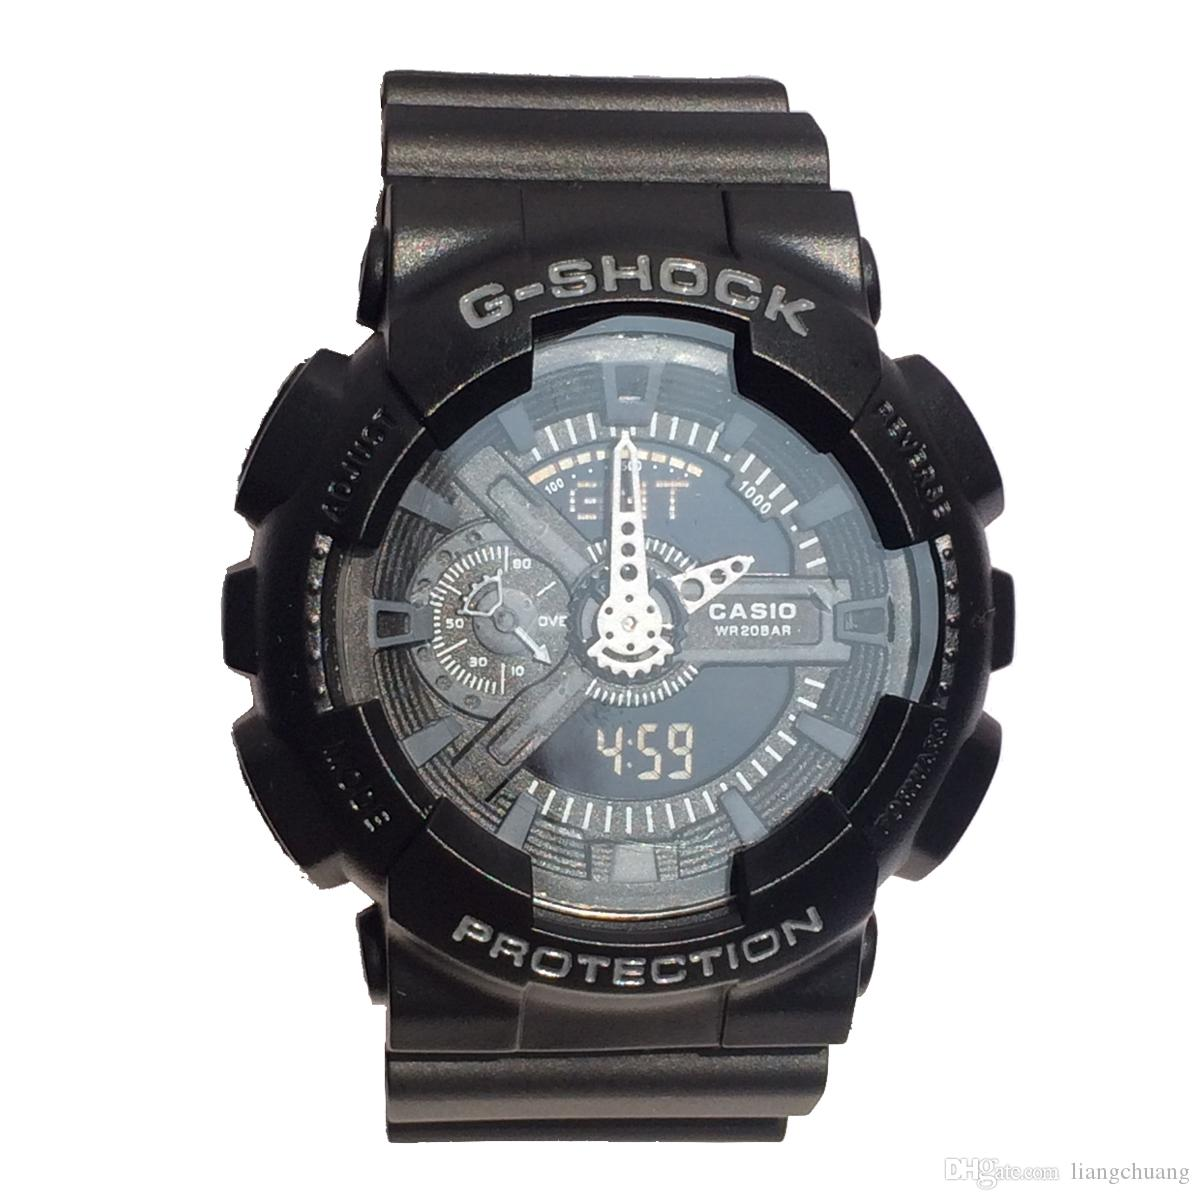 Military grade anti shock film for casio watch g shock analogue digital quartz led alarm sports for Military grade watches